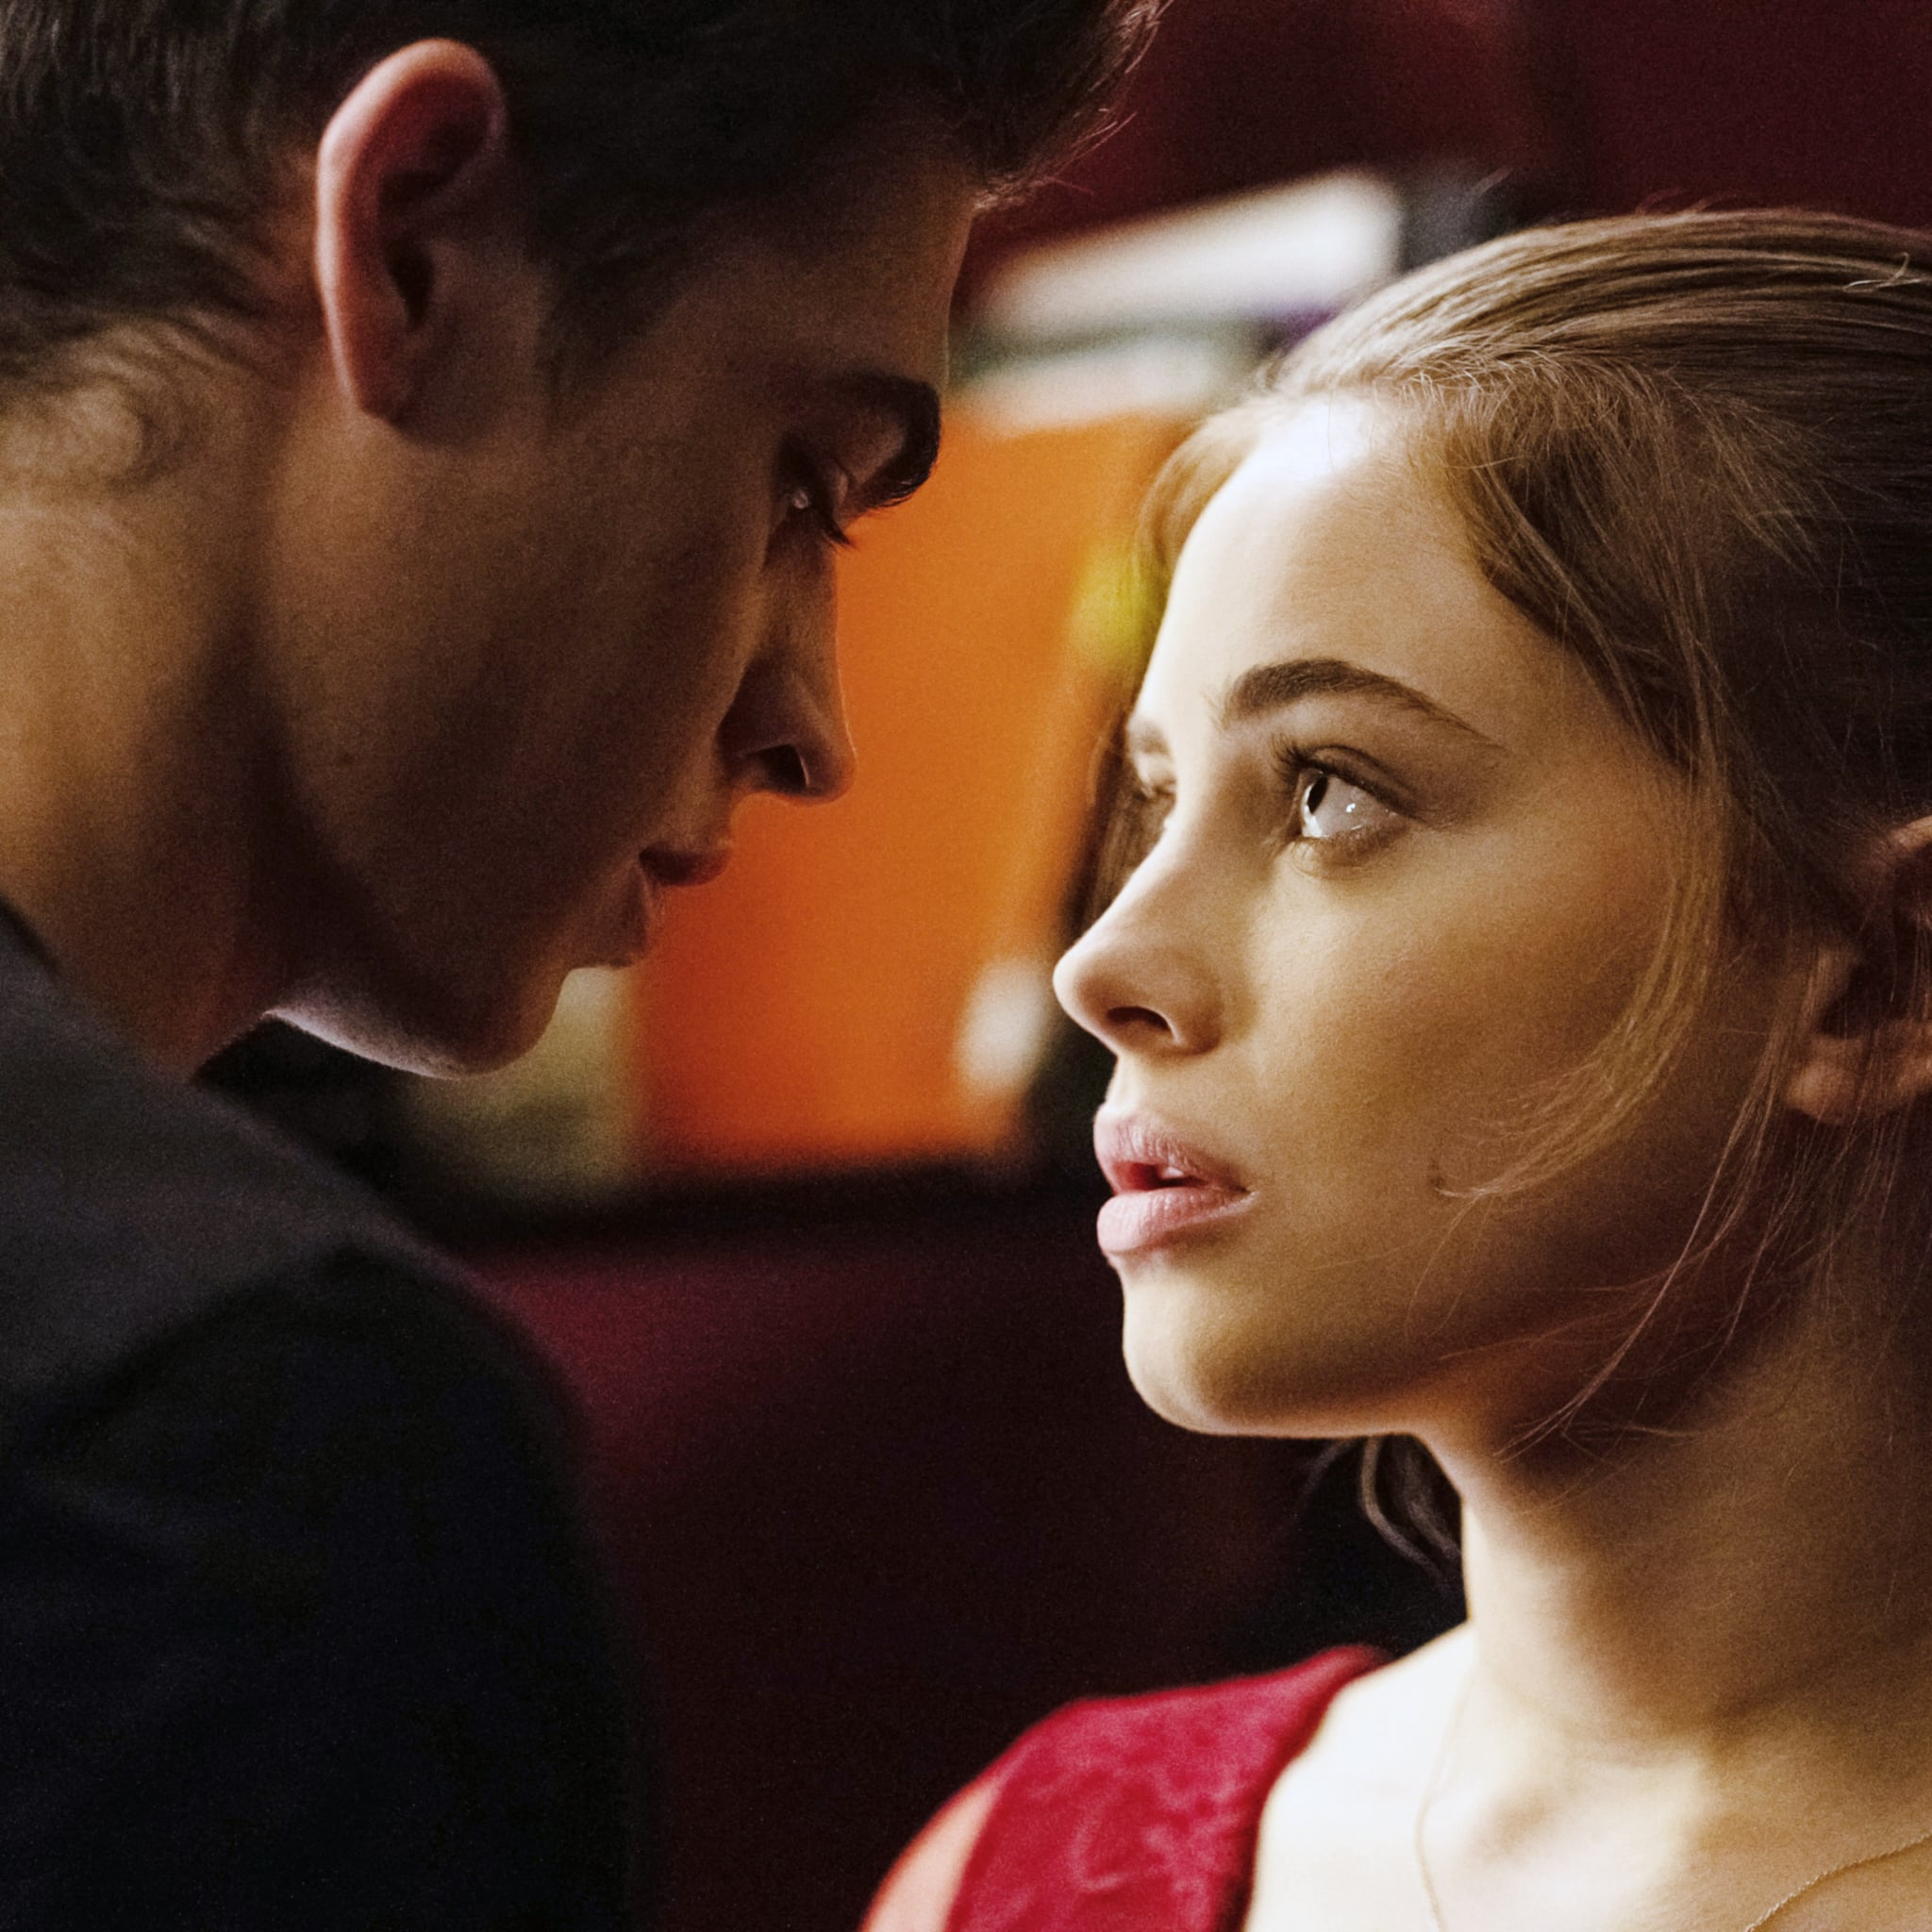 GIFs of Tessa and Hardin From the Movie After | POPSUGAR Entertainment